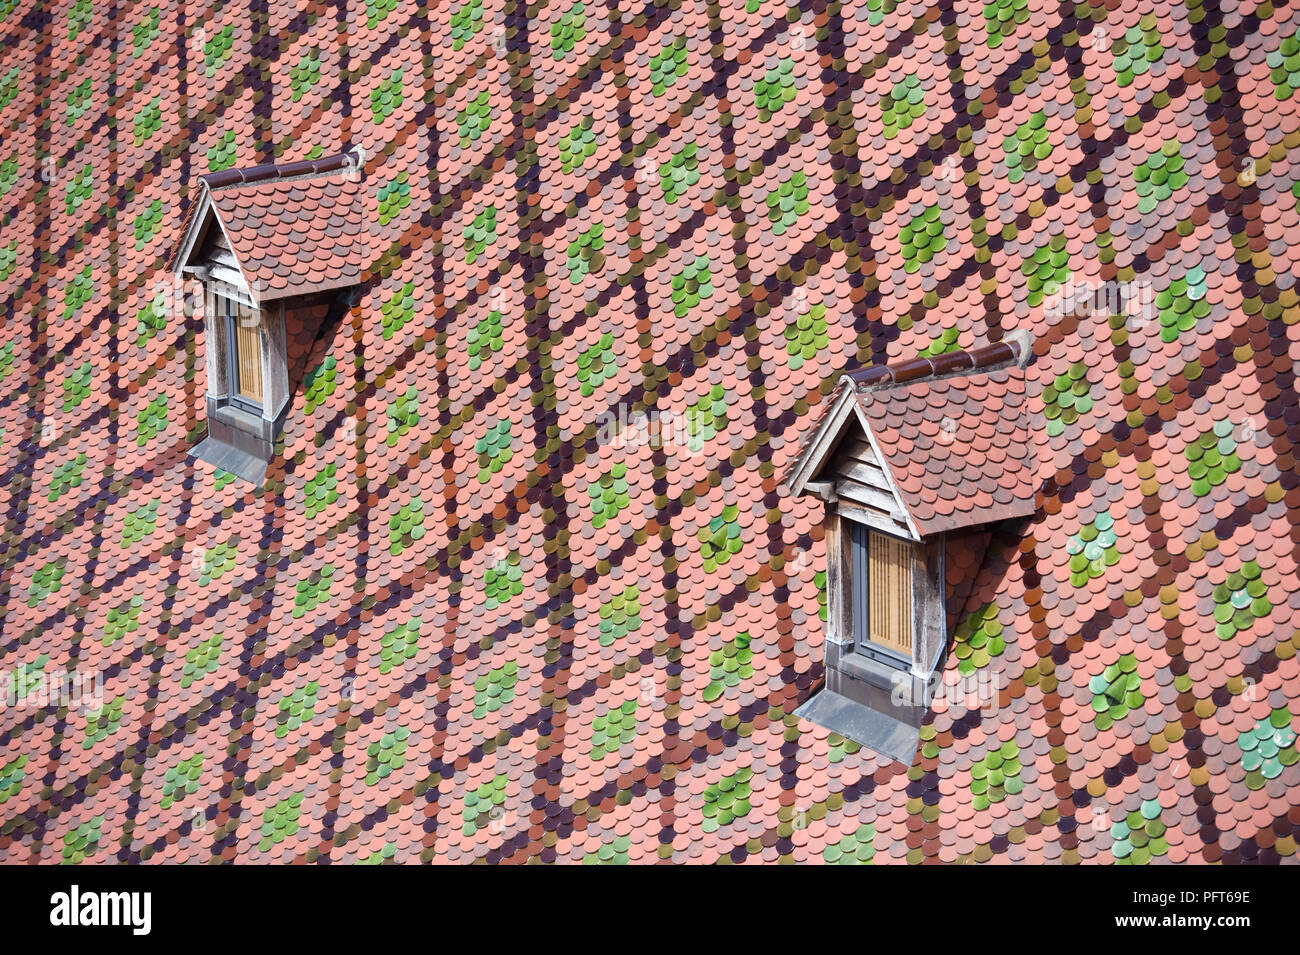 France, Besancon, Palais Granvelle, toit bourguignon roof and dormer windows, close-up - Stock Image